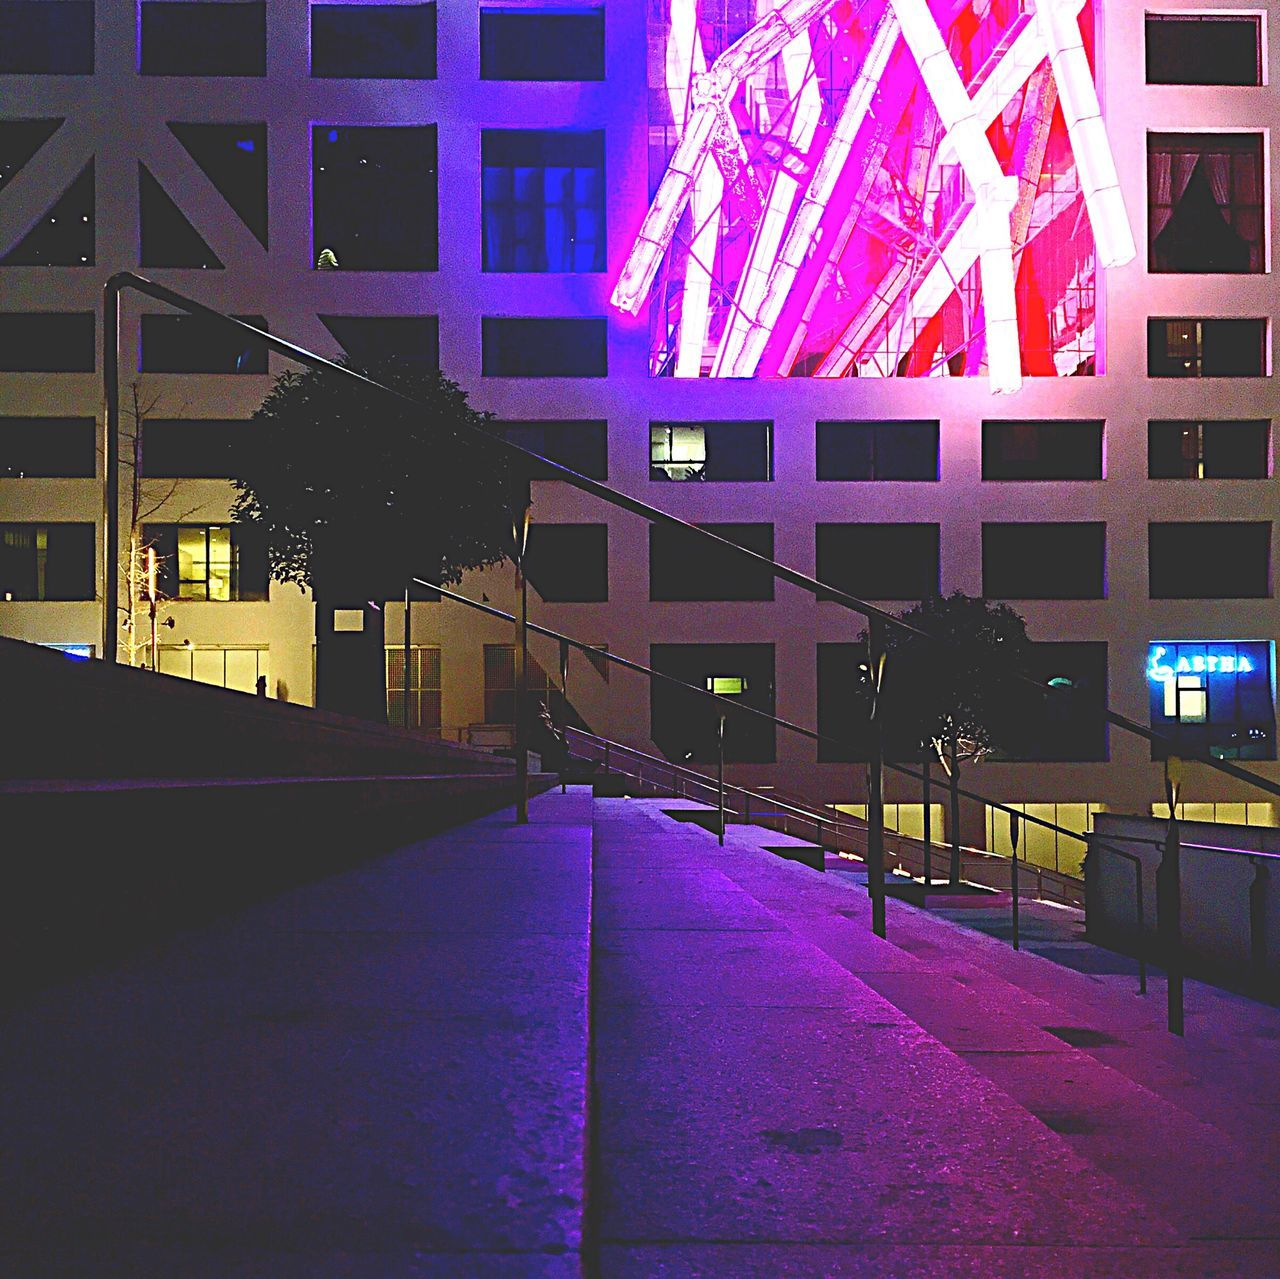 illuminated, night, architecture, building exterior, built structure, travel destinations, outdoors, city, multi colored, modern, no people